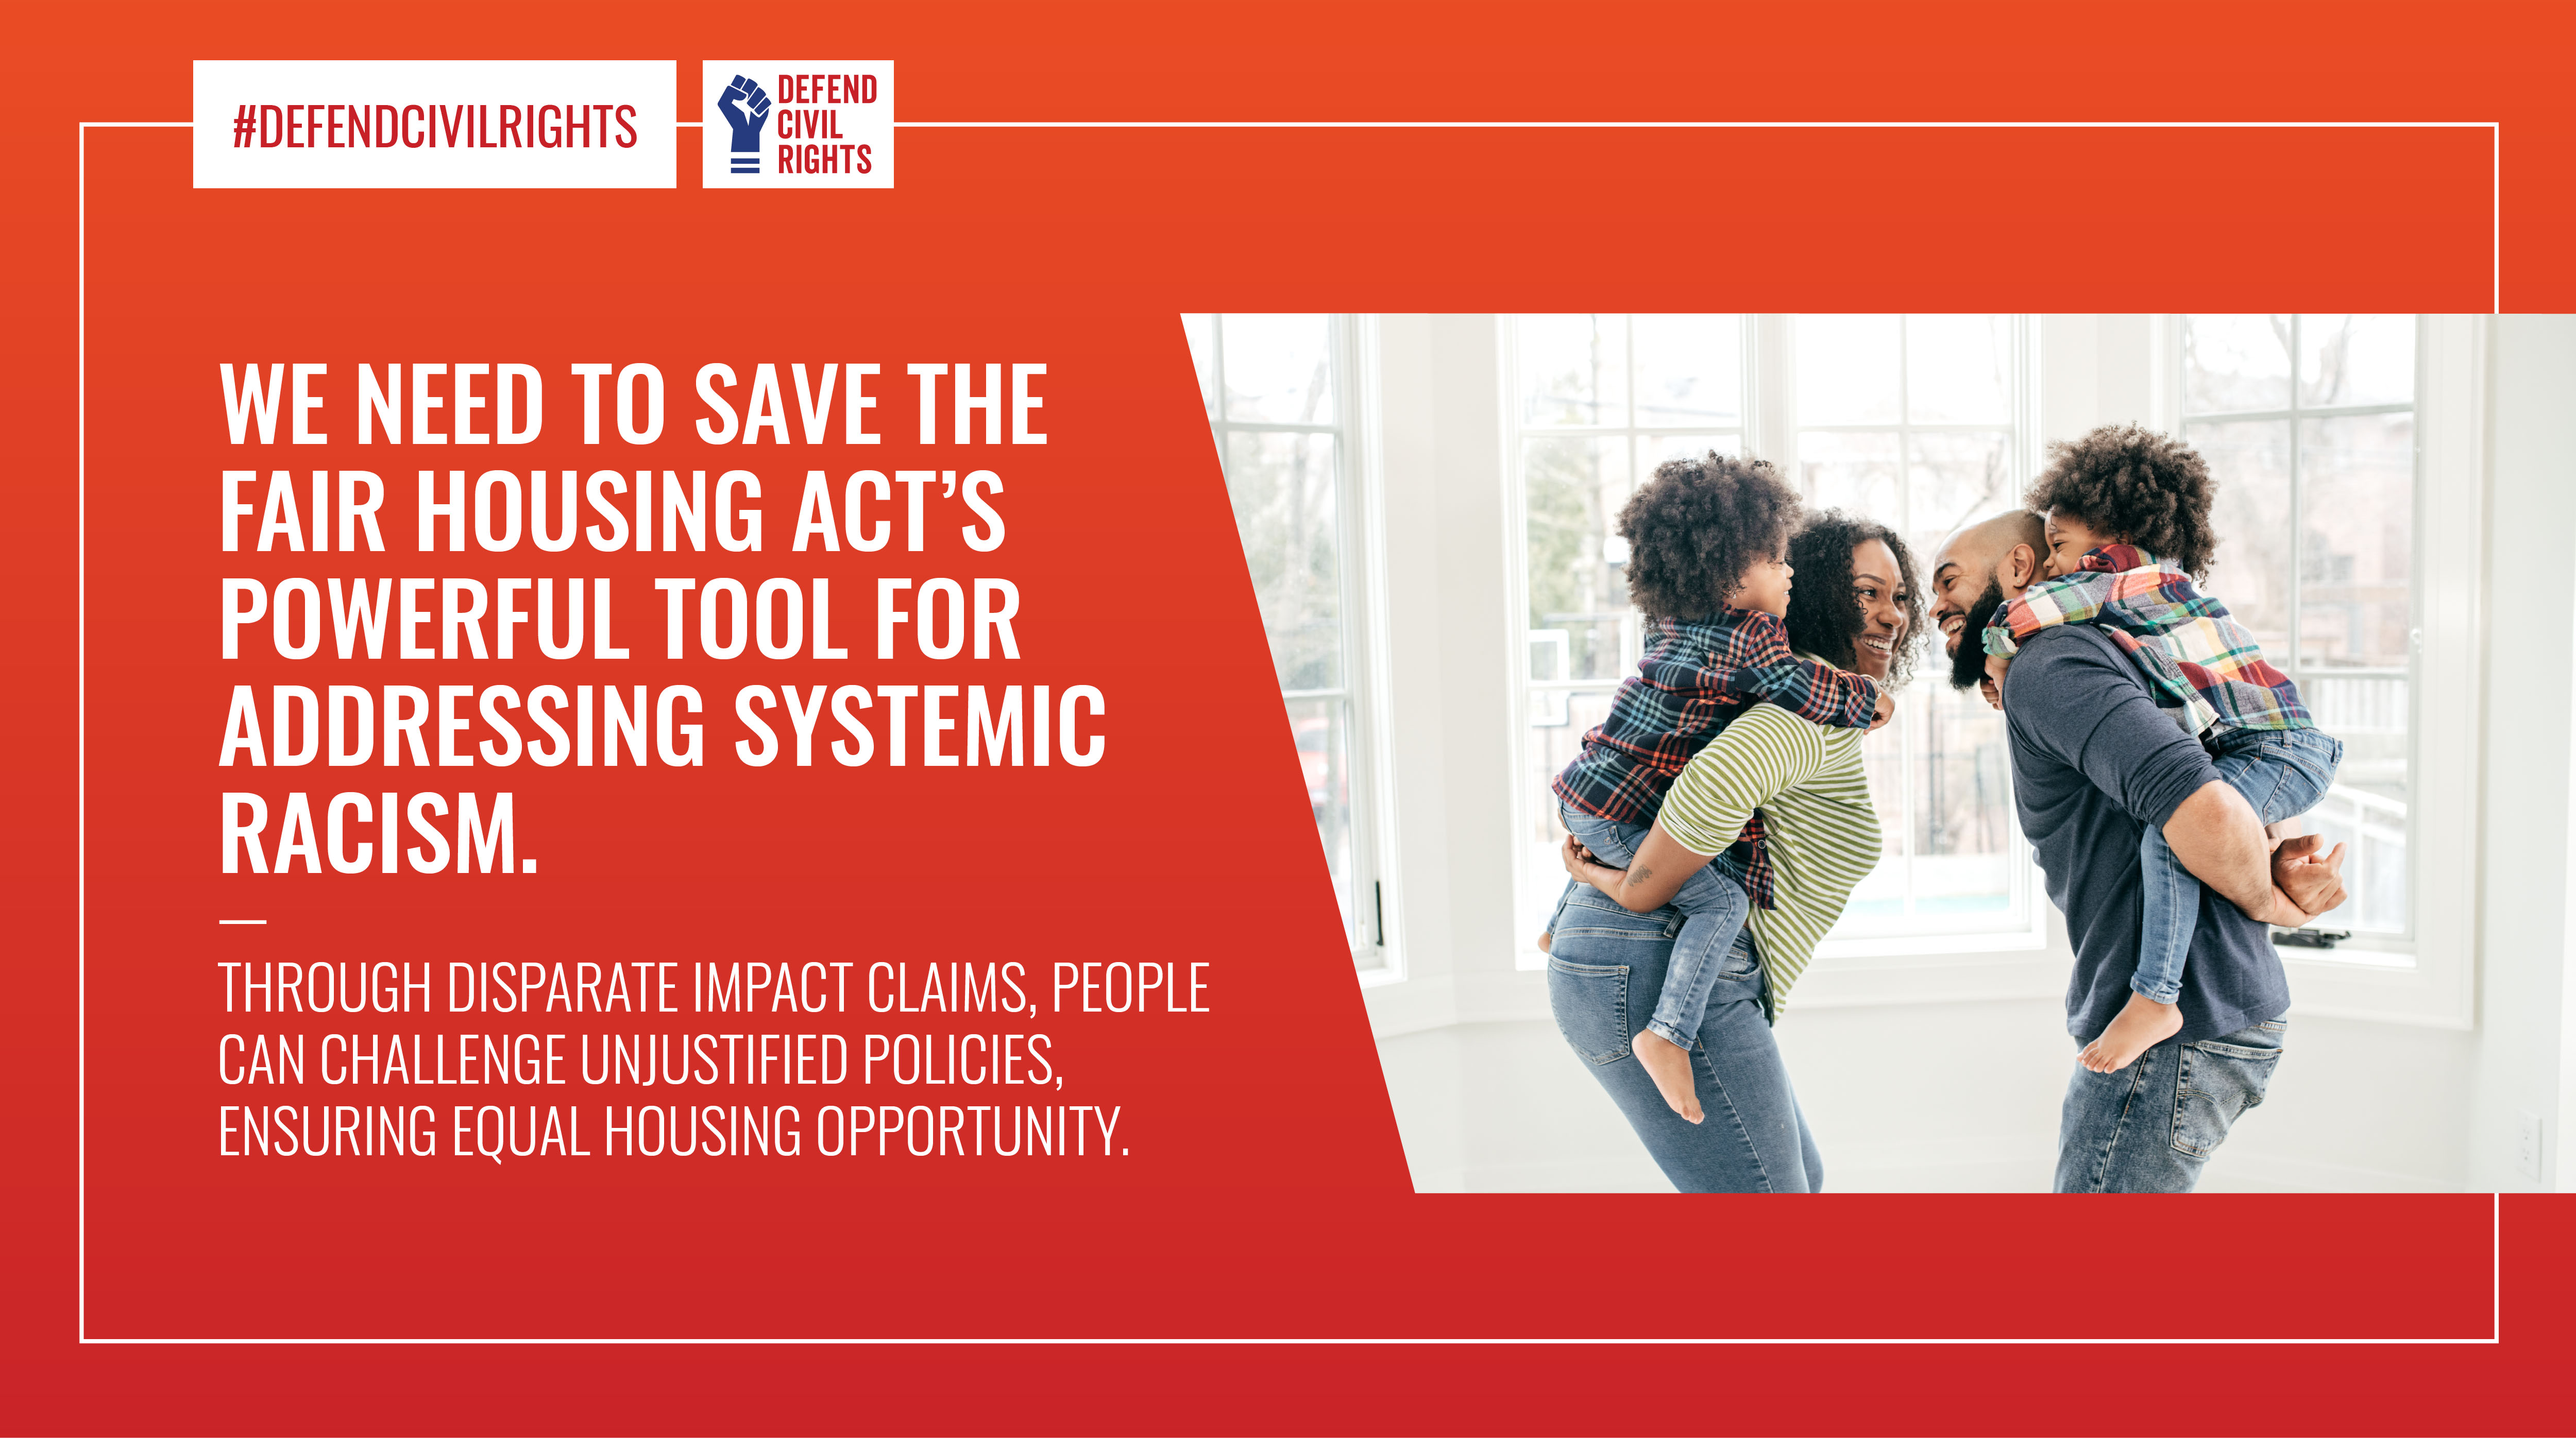 We need to save the fair housing tool for addressing systemic racism.